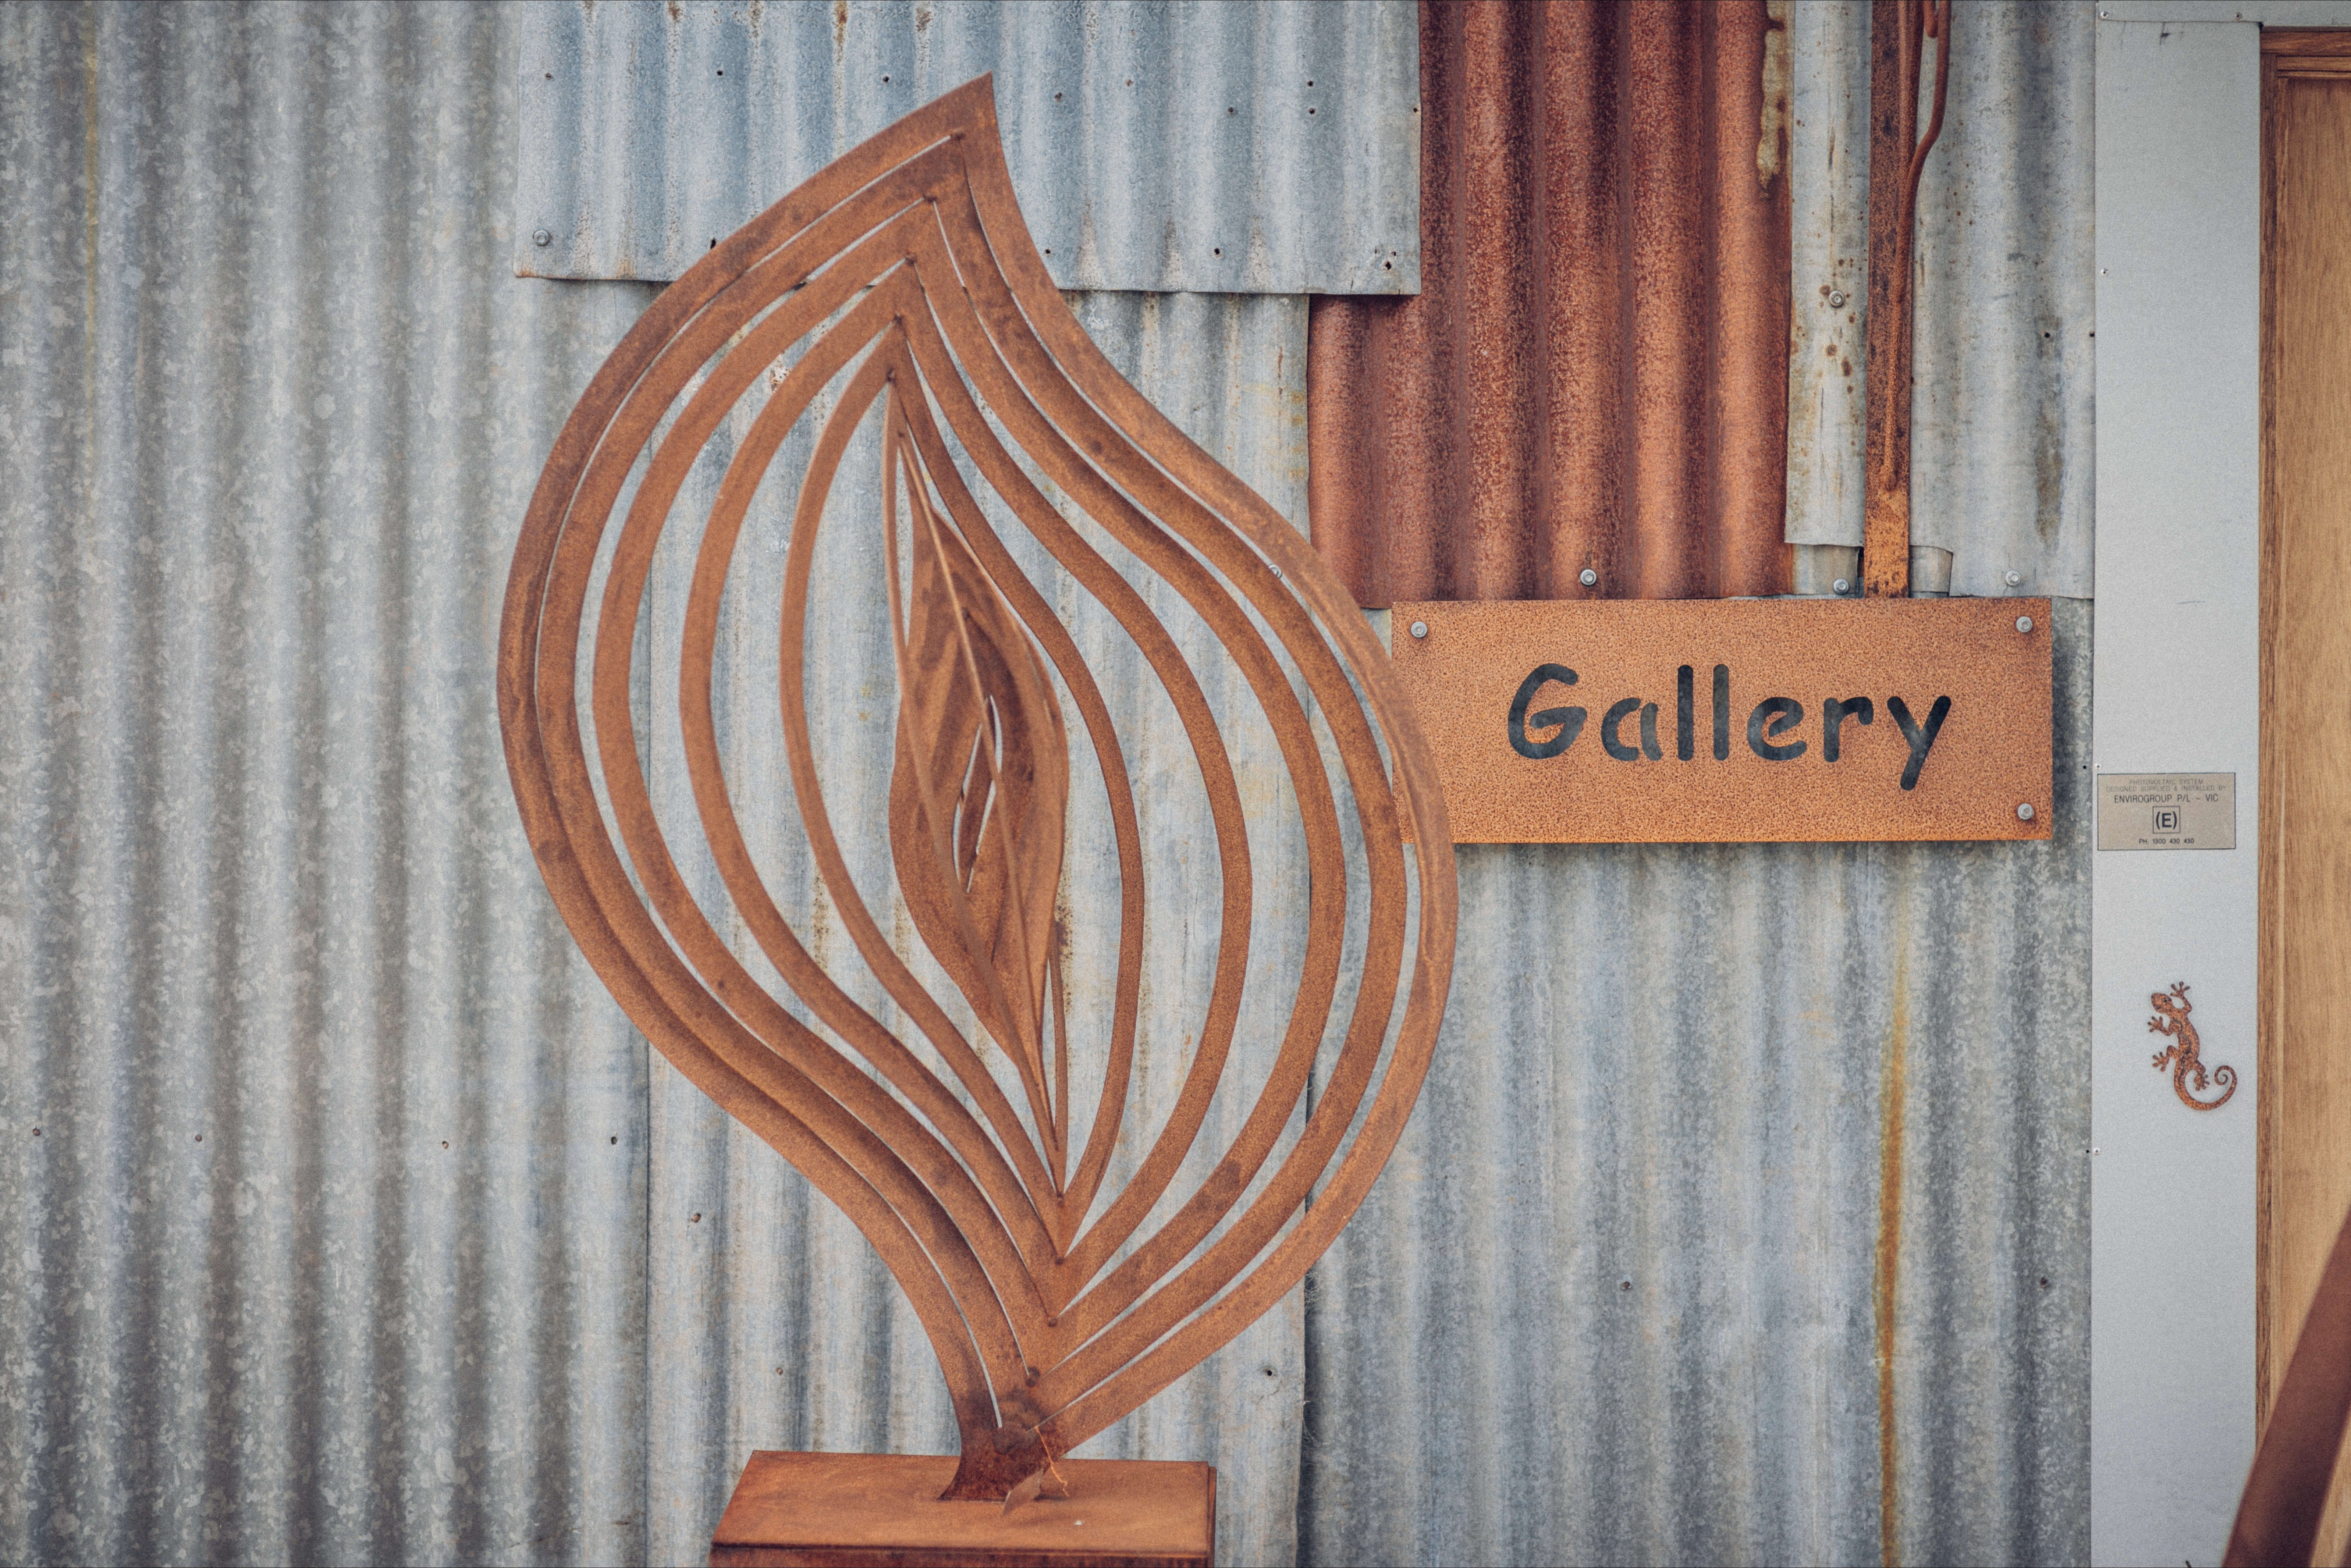 Overwrought Sculpture Garden and Gallery - Accommodation Batemans Bay